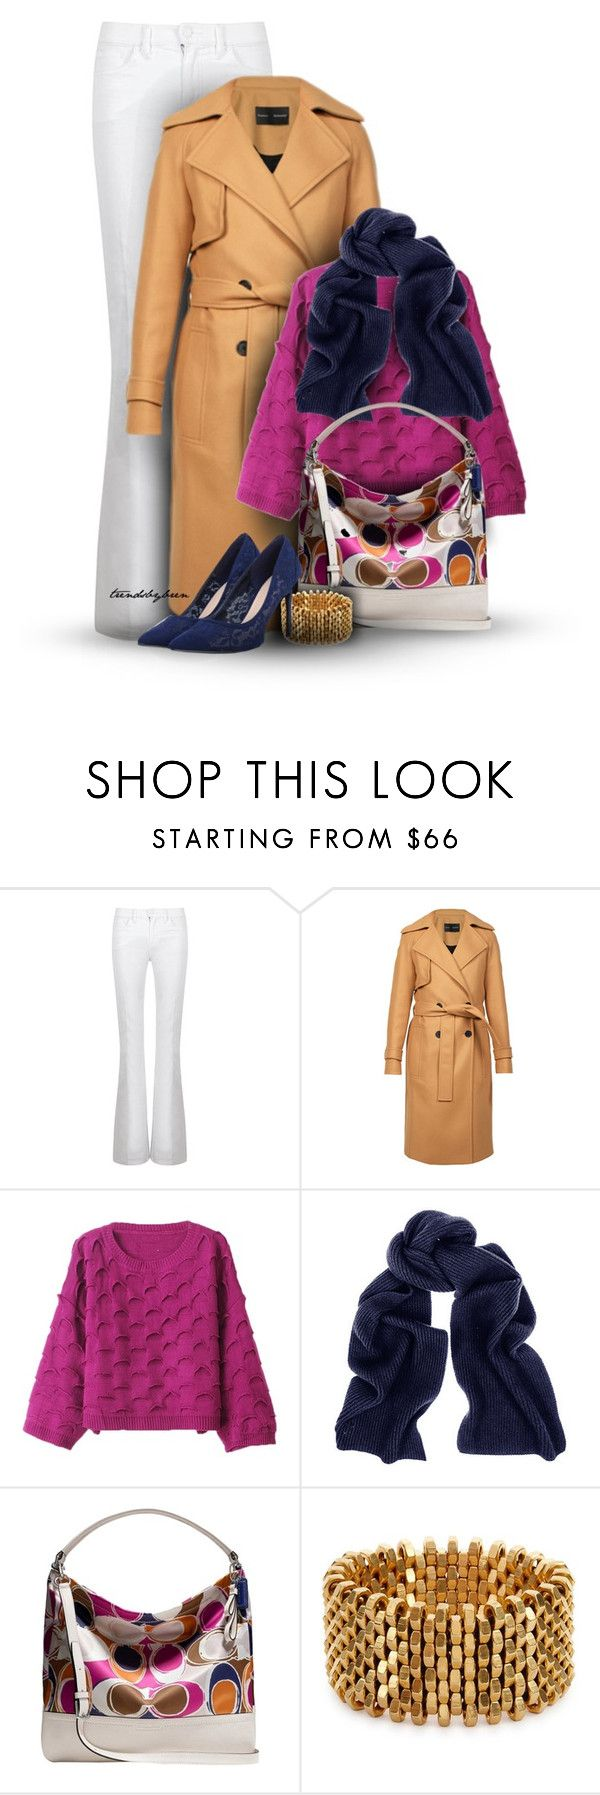 """Ready for Monday"" by trendsbybren ❤ liked on Polyvore featuring мода, Tory Burch, Proenza Schouler, Coach, Alice Menter, CHARLES & KEITH, office и coach"